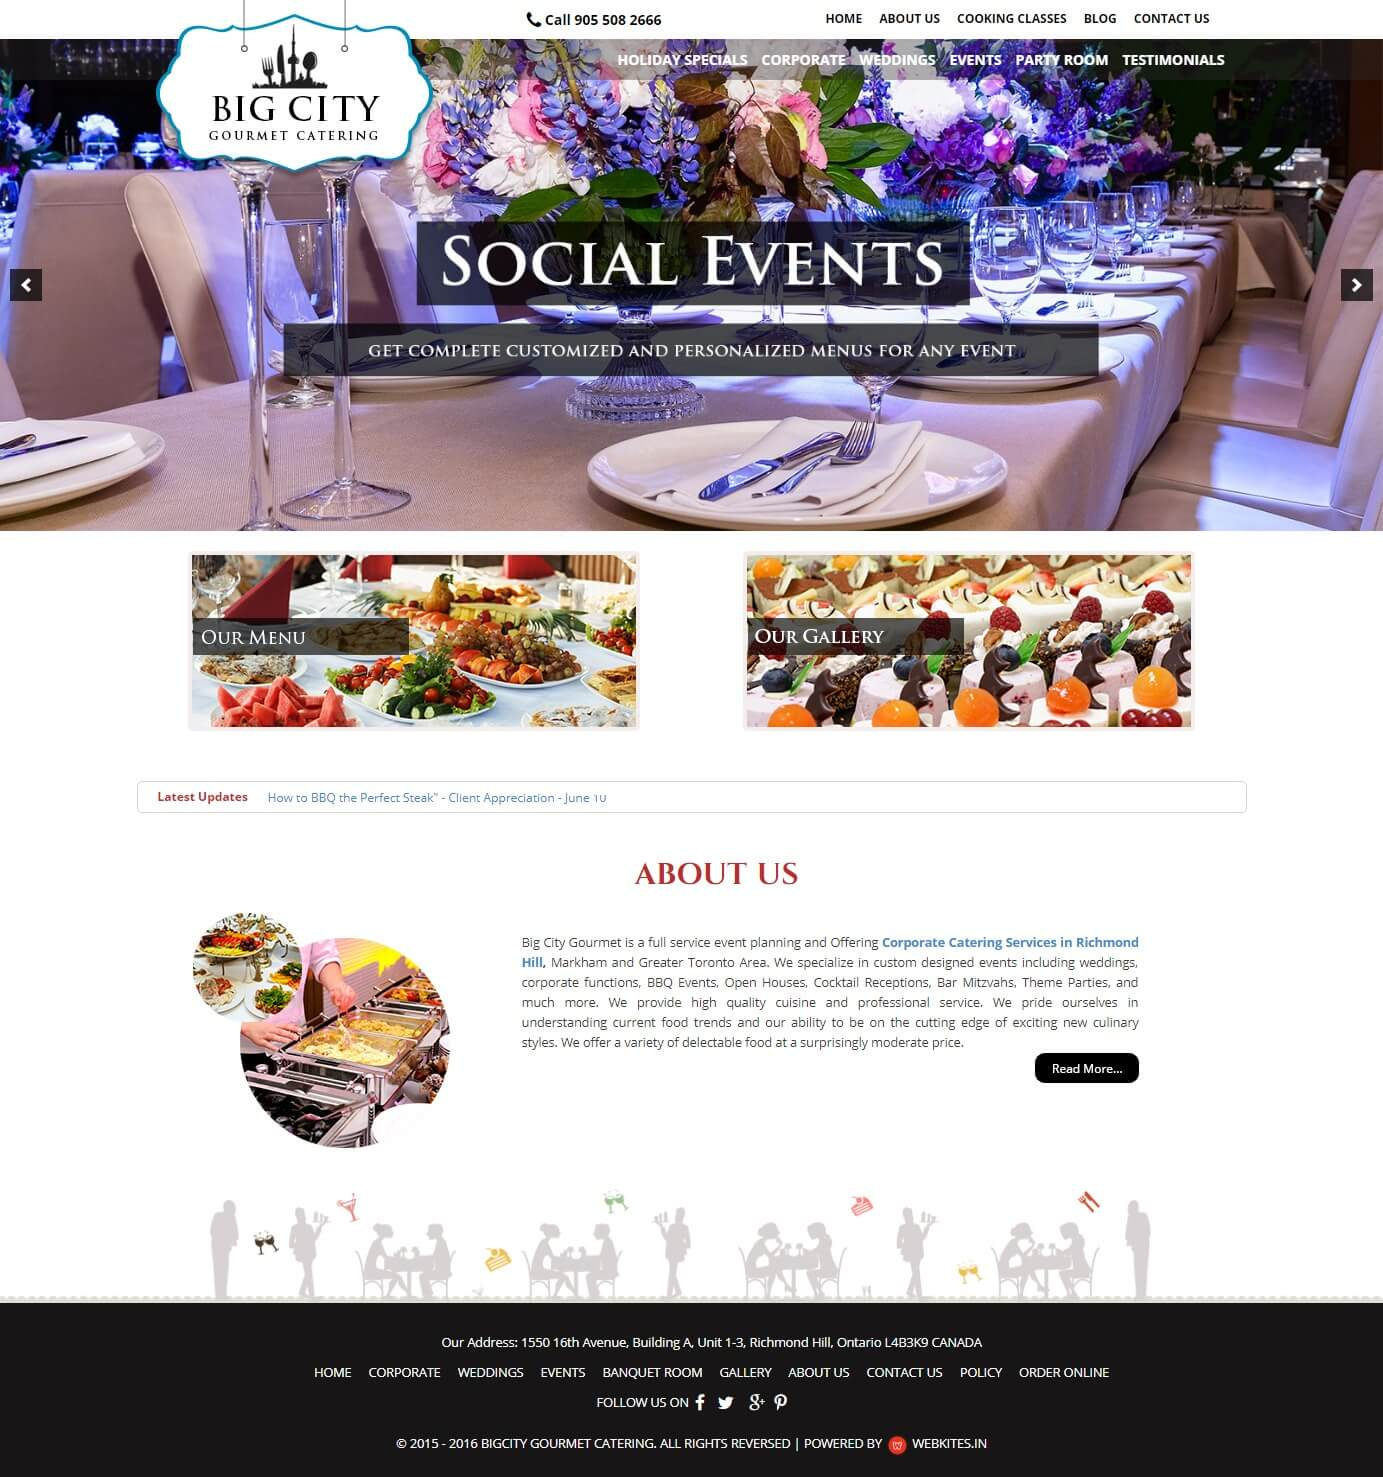 Wordpress webdesigning for Bigcity Gourmet Catering